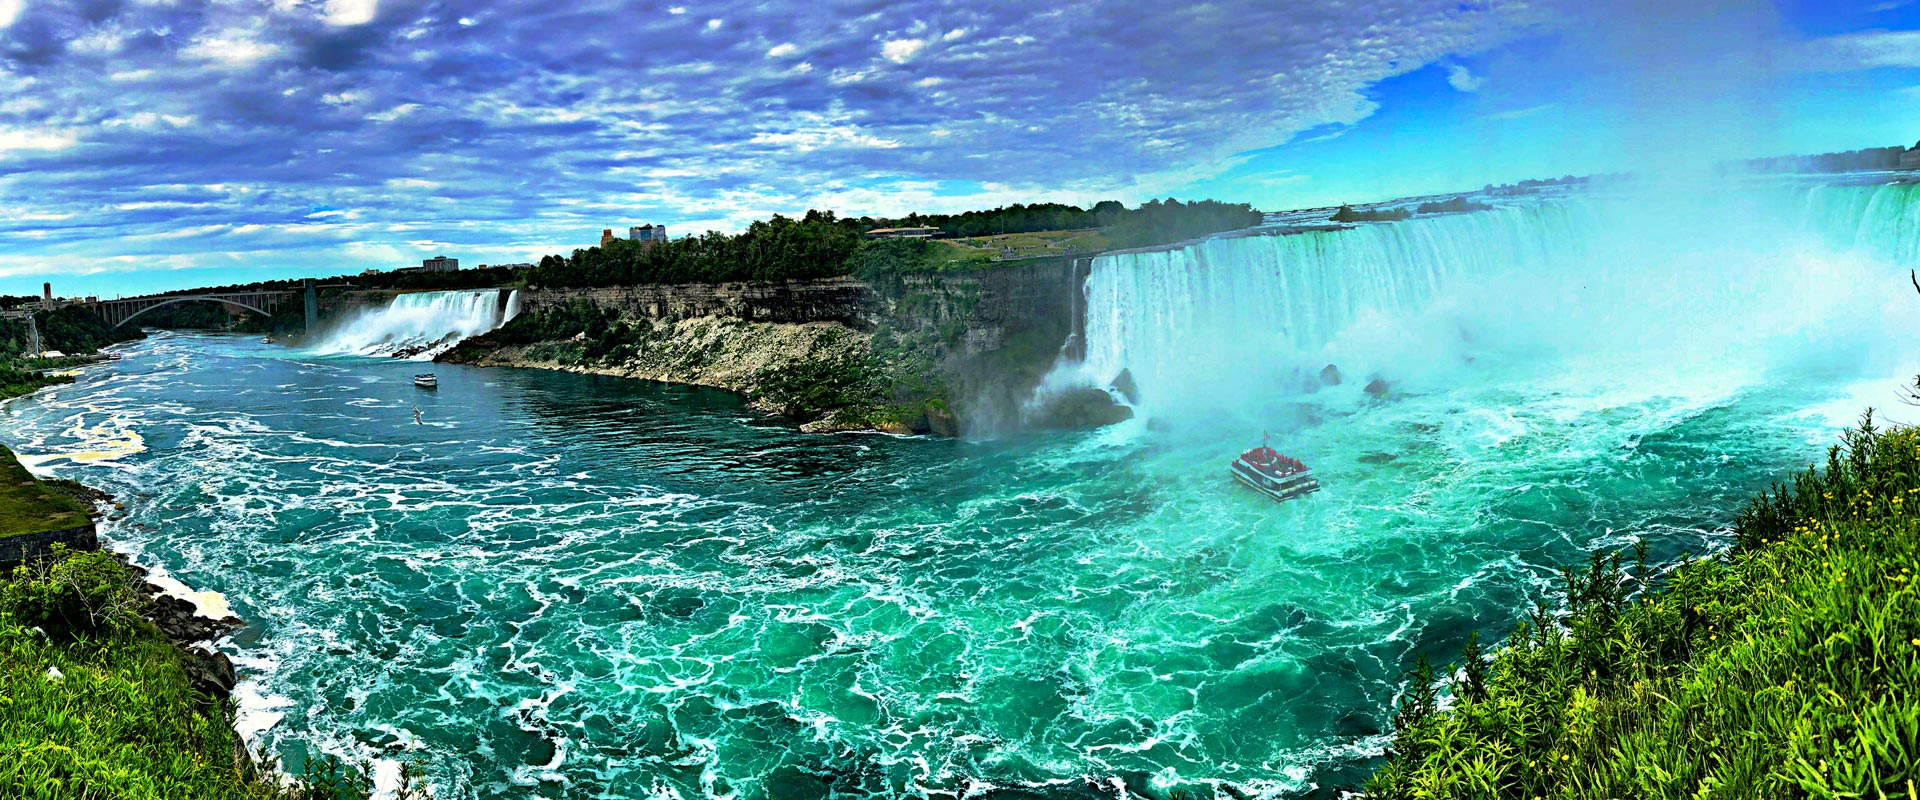 How Much Does It Cost To Ride The Boat At Niagara Falls